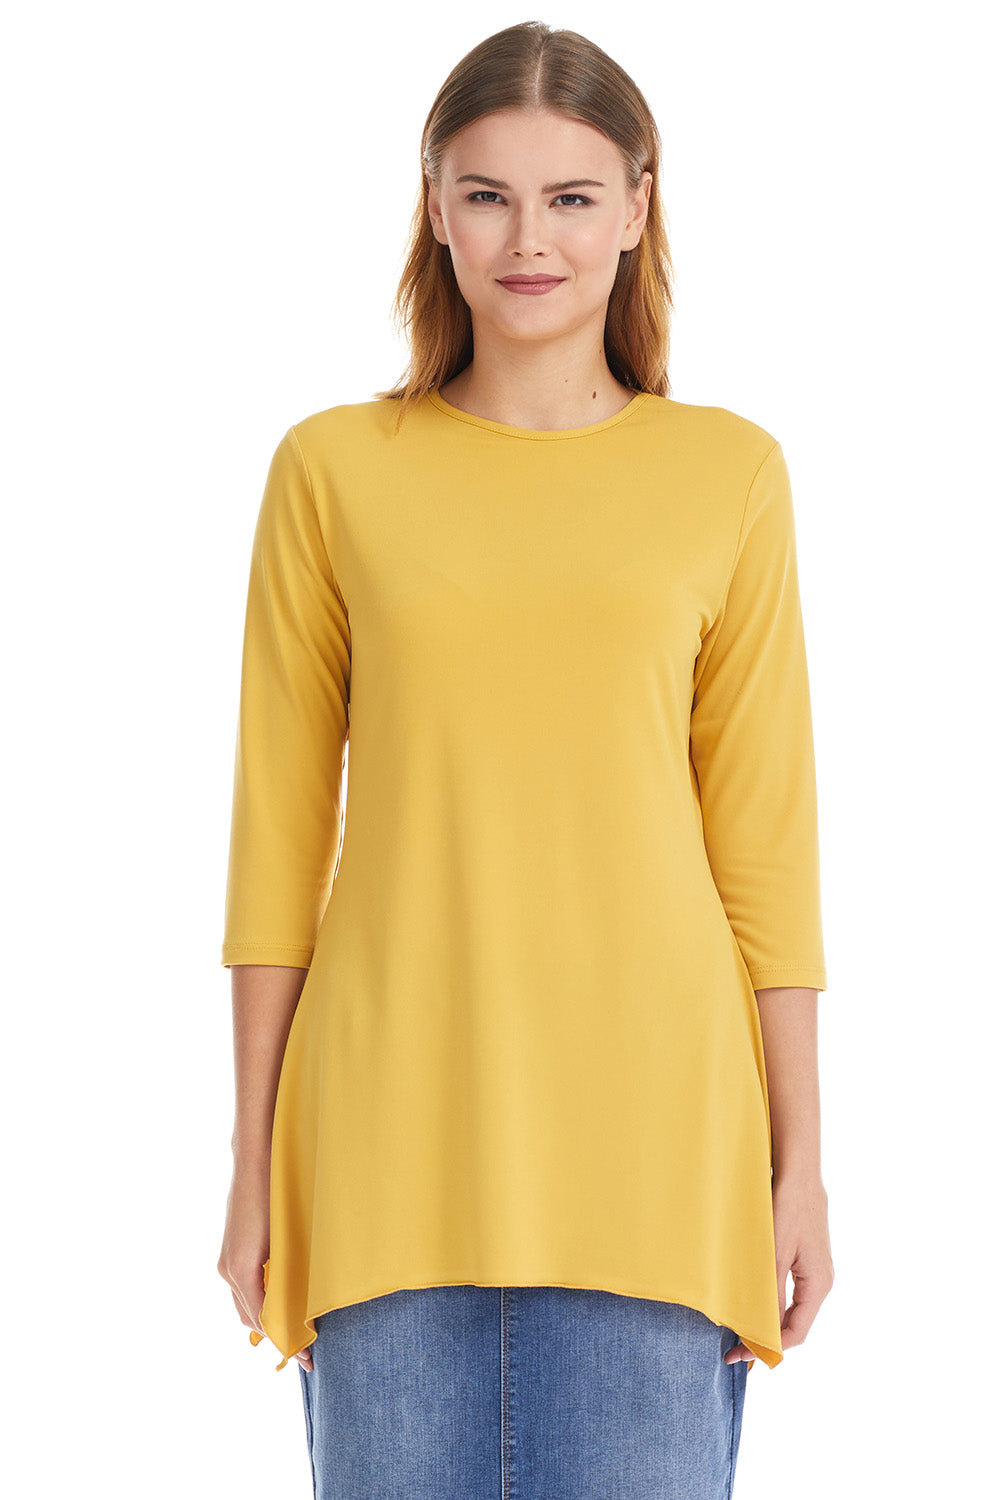 Esteez DAISY top - Womens 3/4 Sleeve Loose Fitting Shirt - Sharkbite Hem - MUSTARD